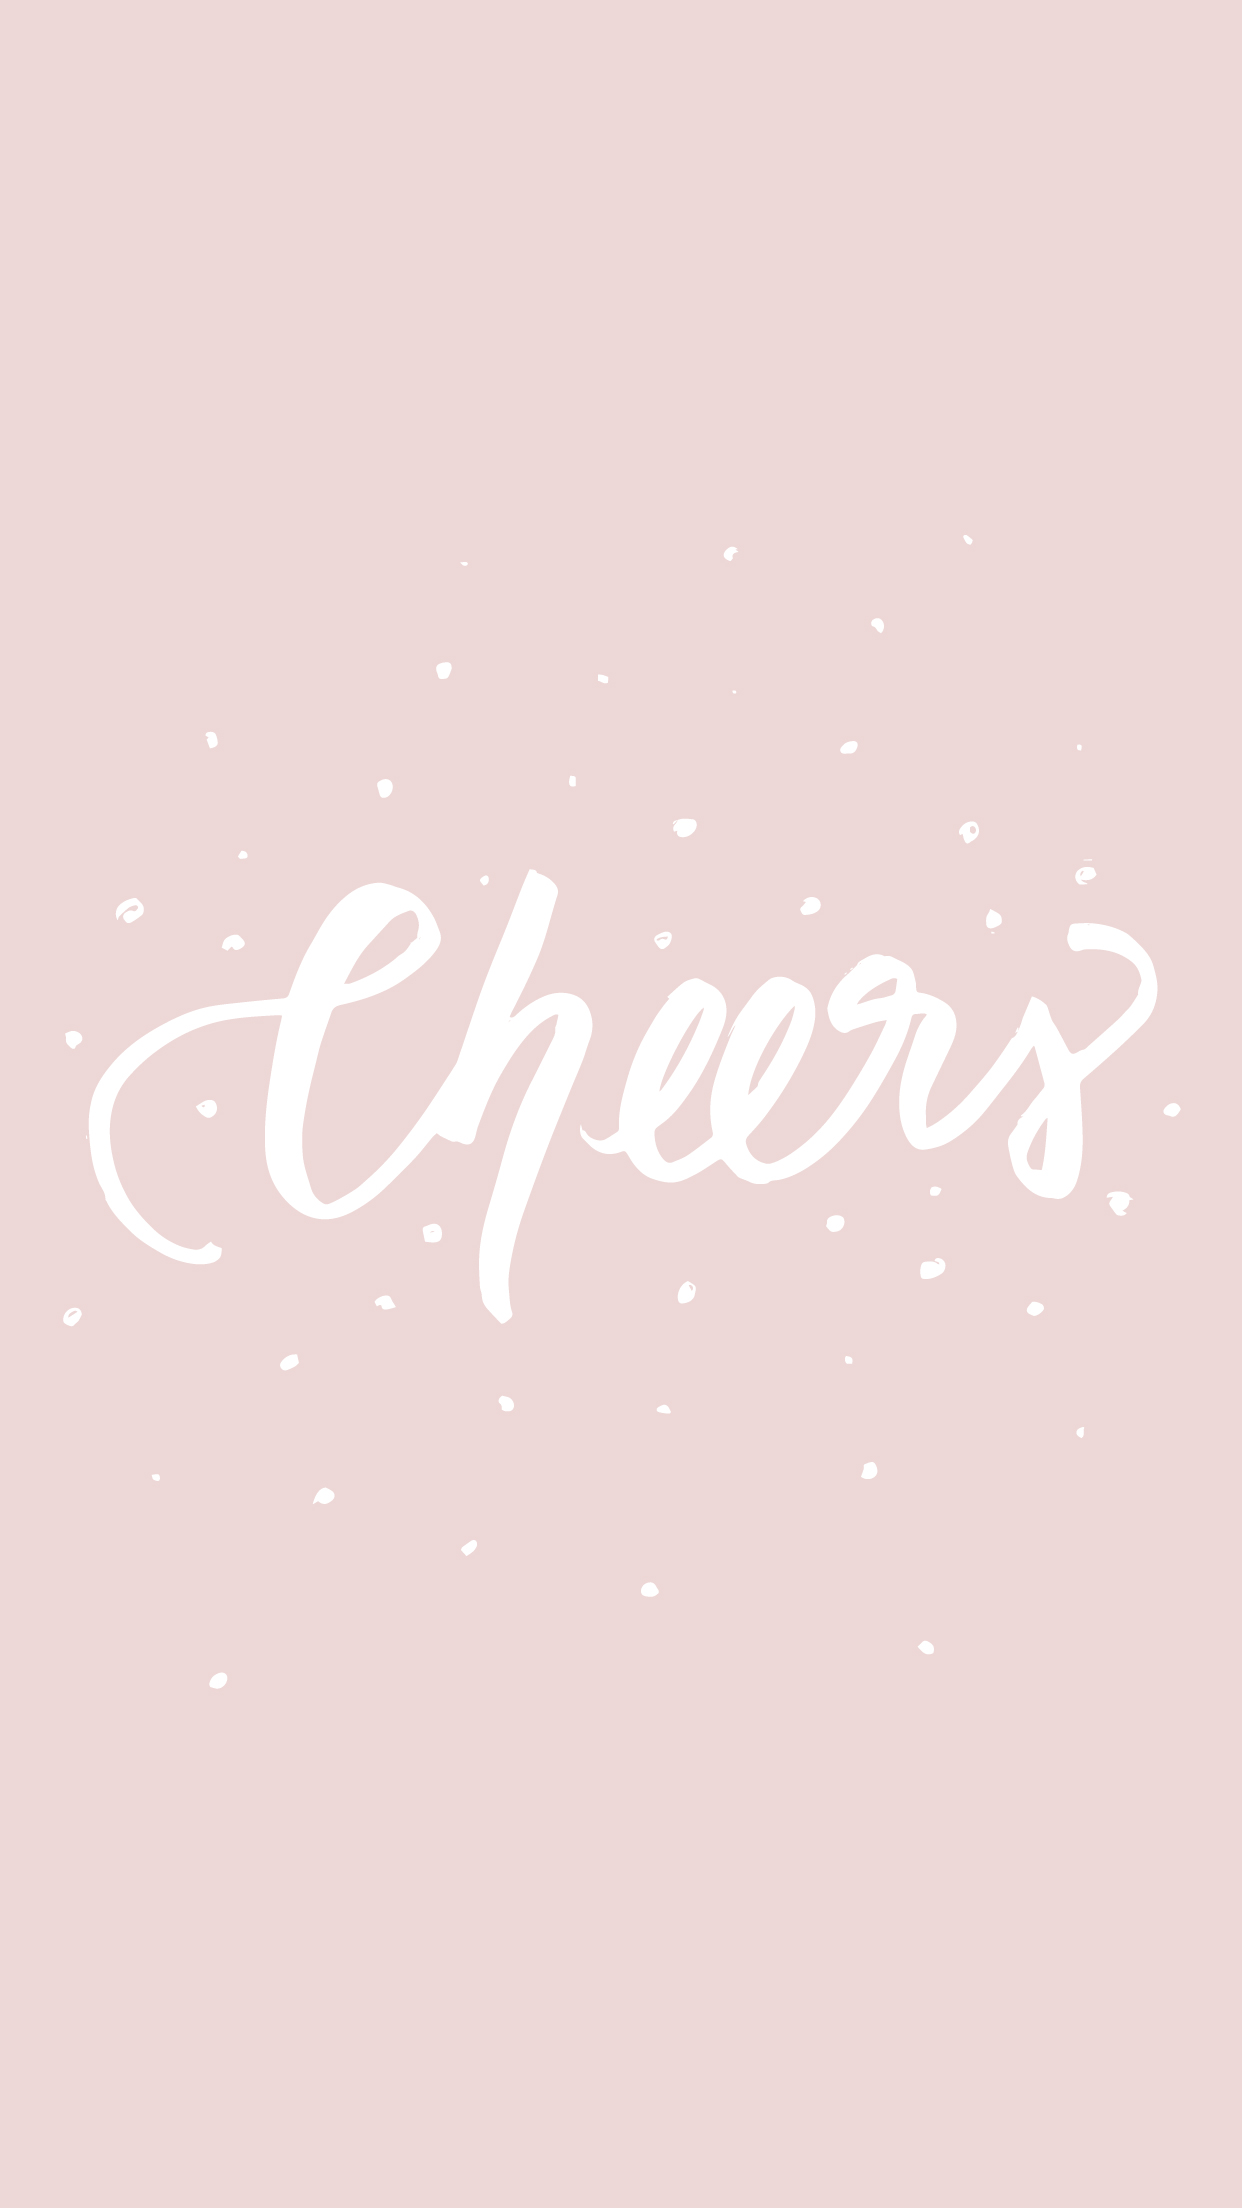 januarywallpapers_cheers_mobile